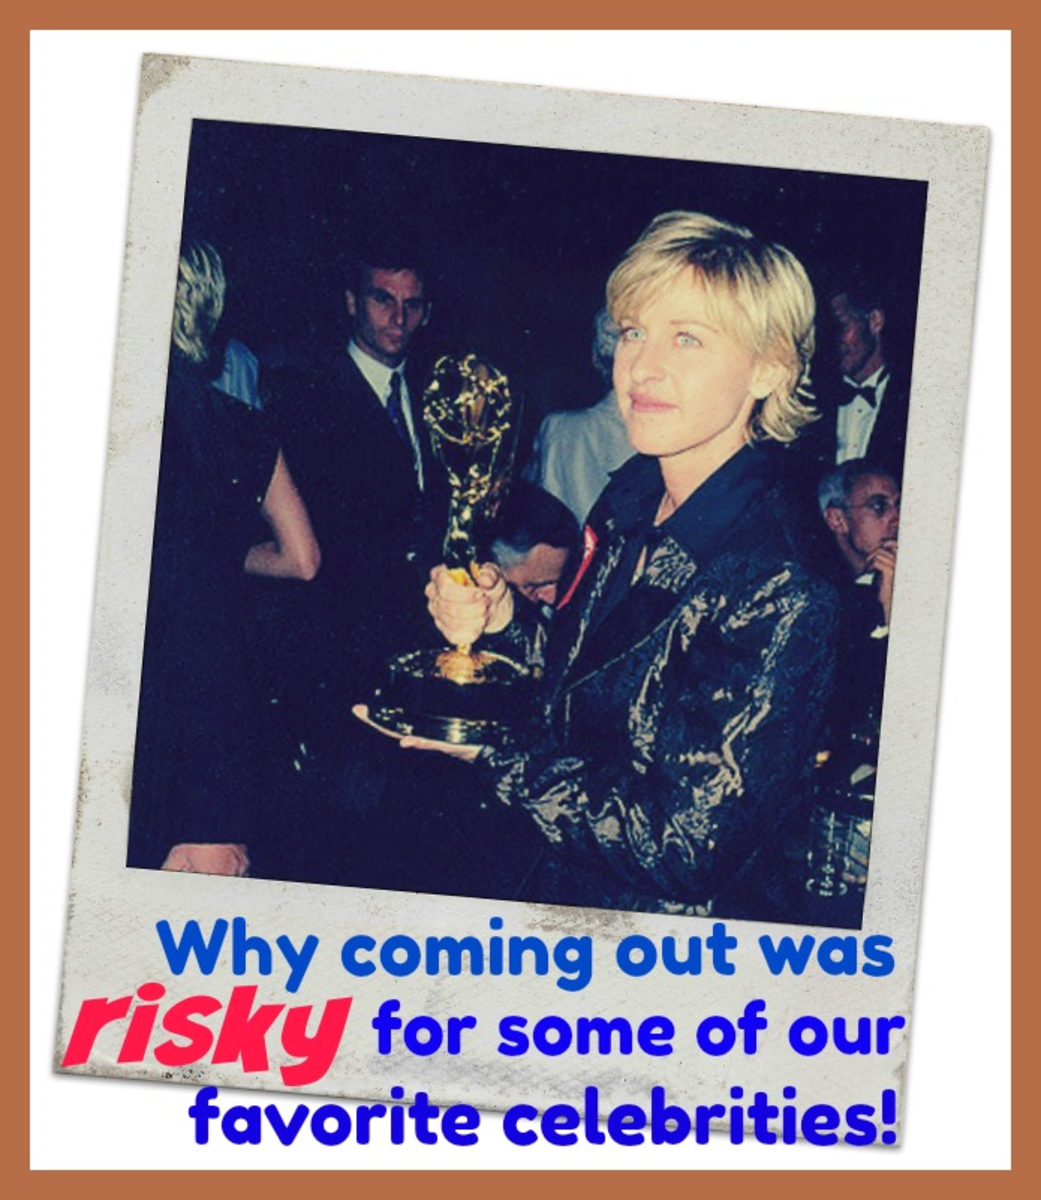 Many forget that Ellen DeGeneres risked a lot when revealing she was gay in the 1990s.